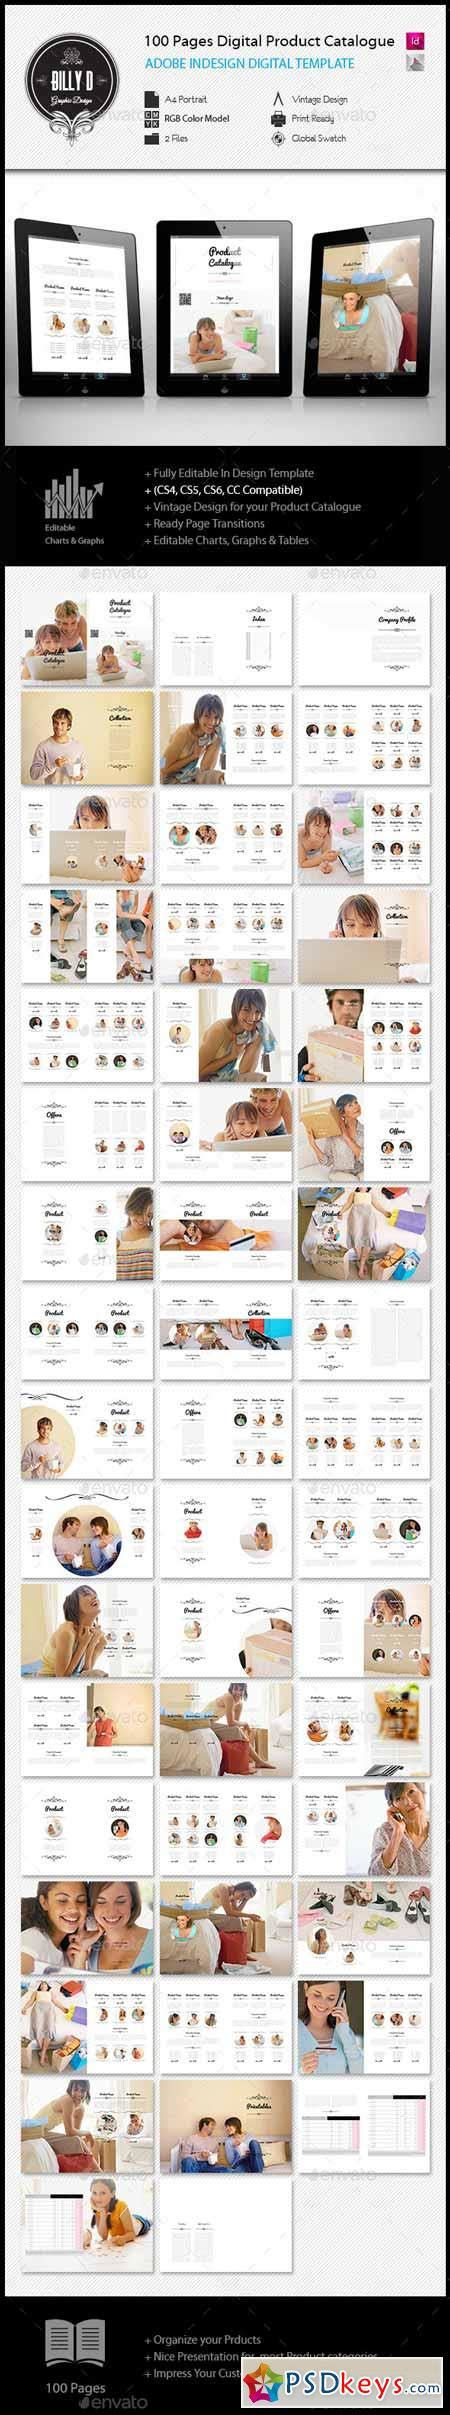 100 Pages A4 Digital Product Catalogue Template 11909003 187 Free Download Photoshop Vector Stock Digital Catalog Template